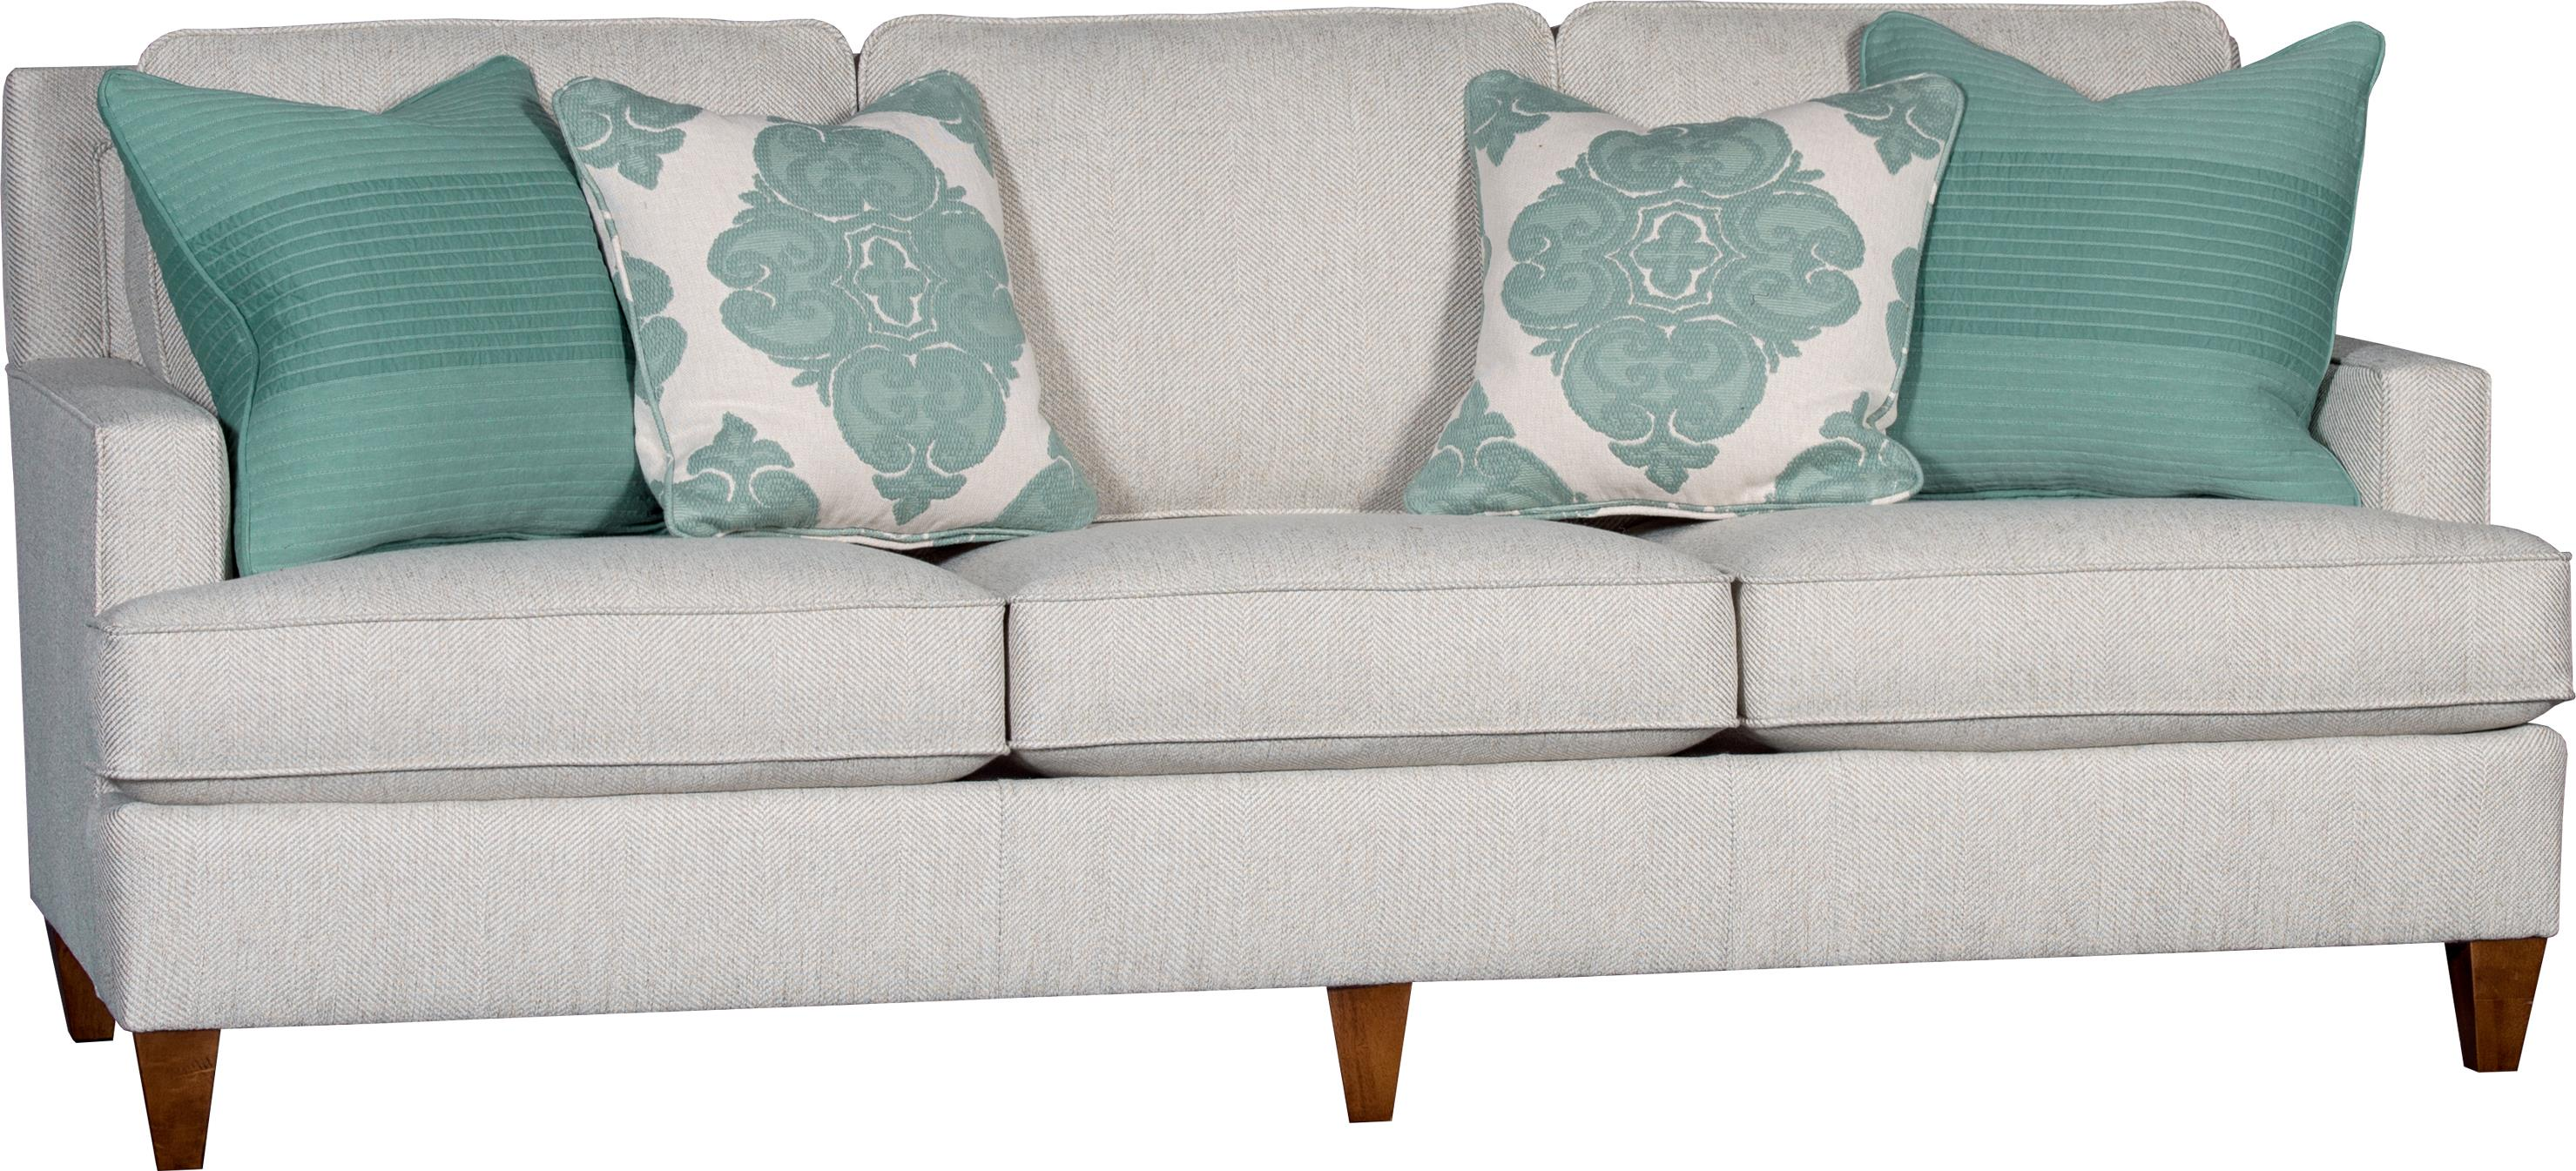 3030 Sofa by Mayo at Wilson's Furniture